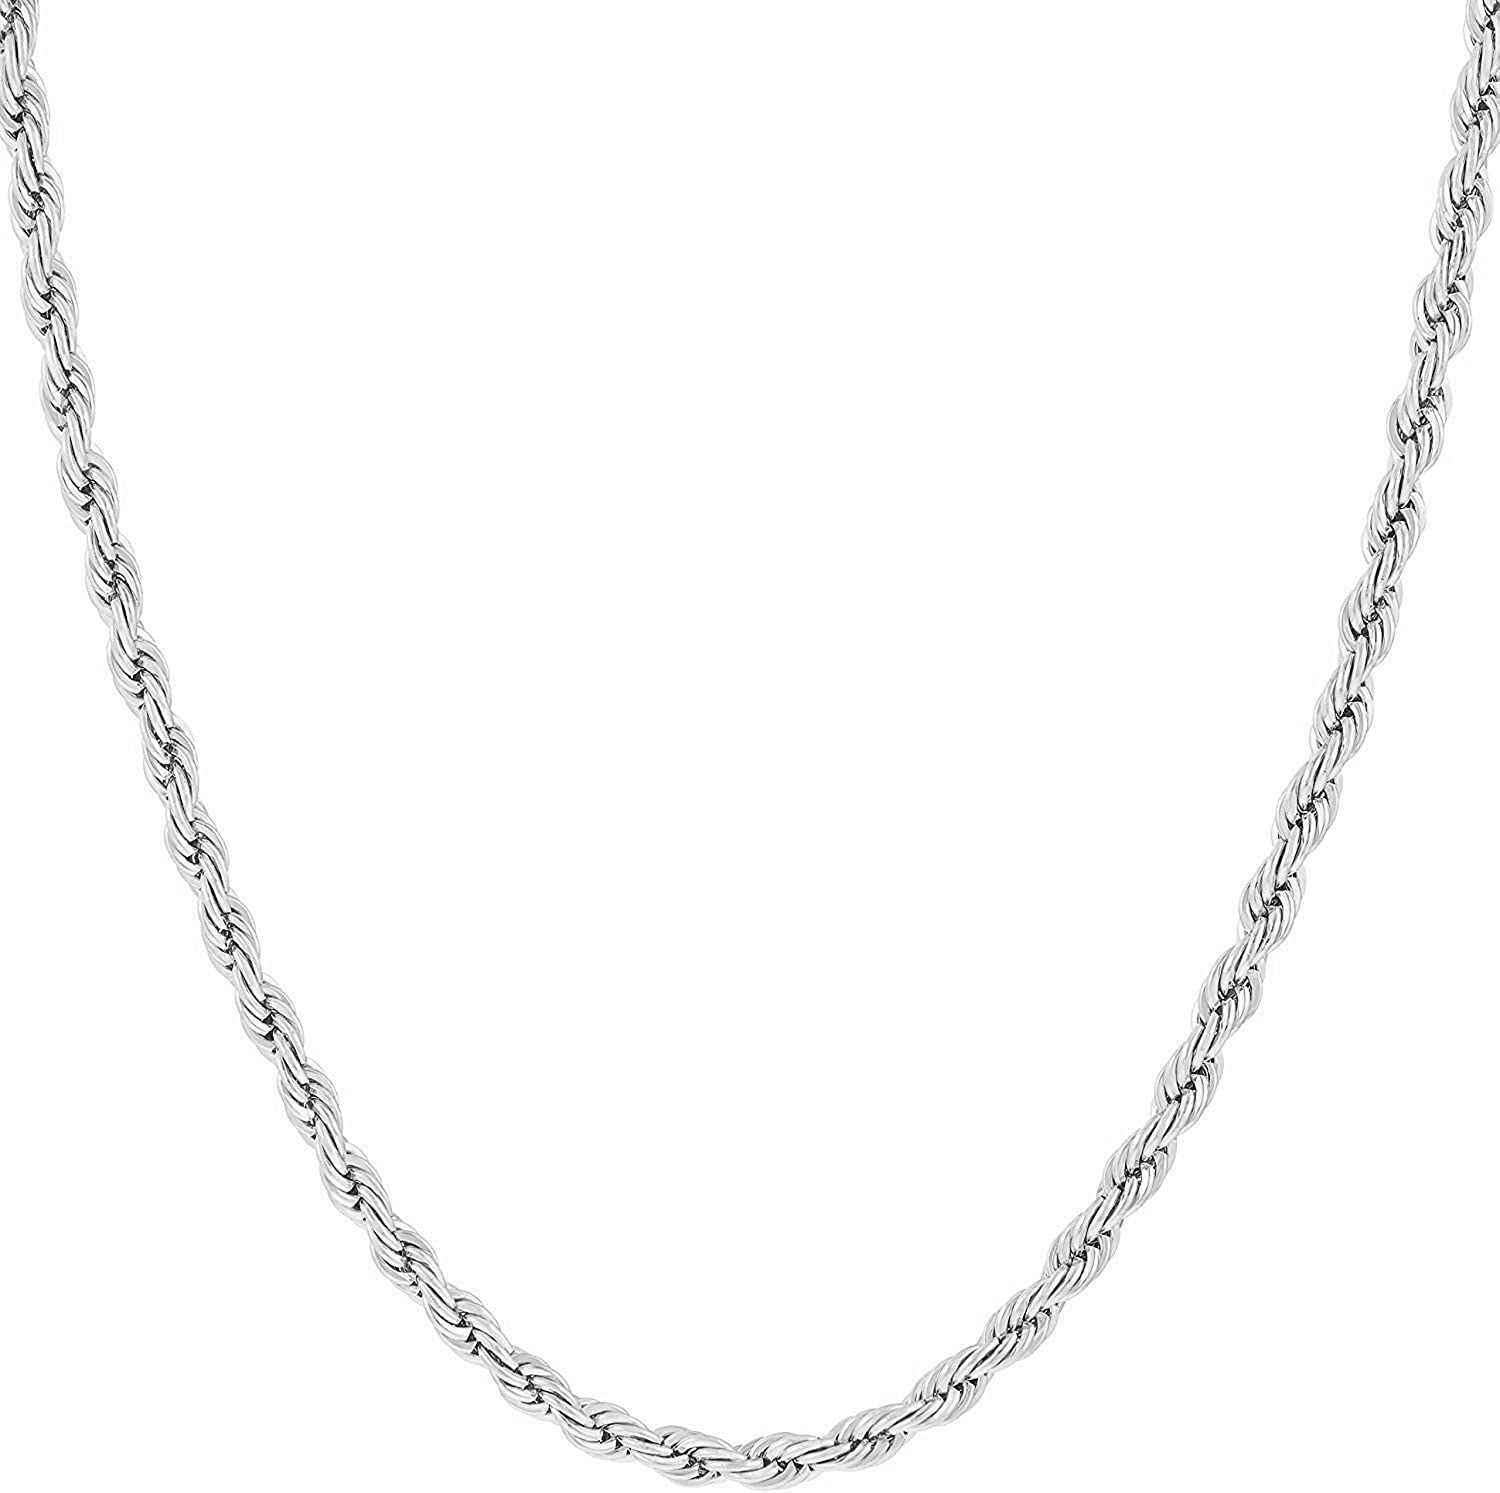 MCS Jewelry 14K White Gold 2mm Light Rope Chain necklace, Length: 16